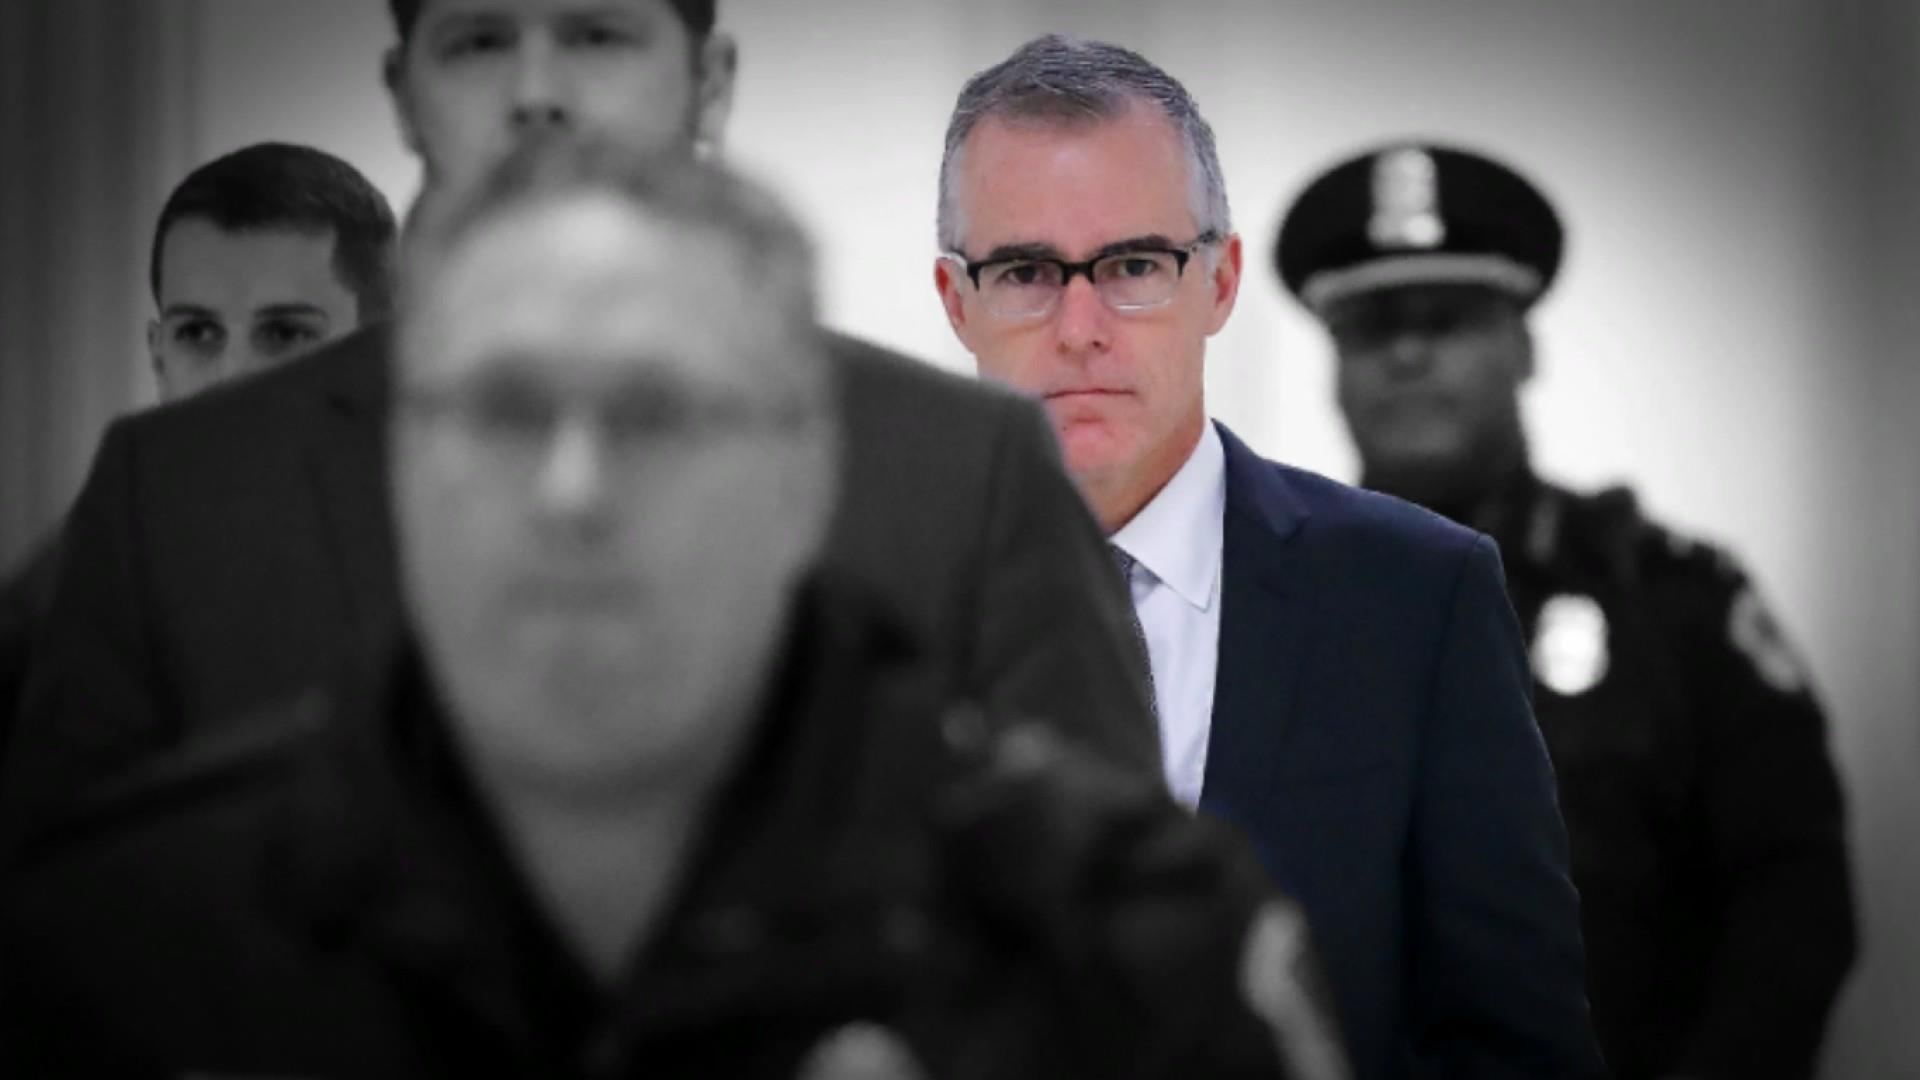 McCabe: Trump's loyalty demands are classic criminal enterprise behavior